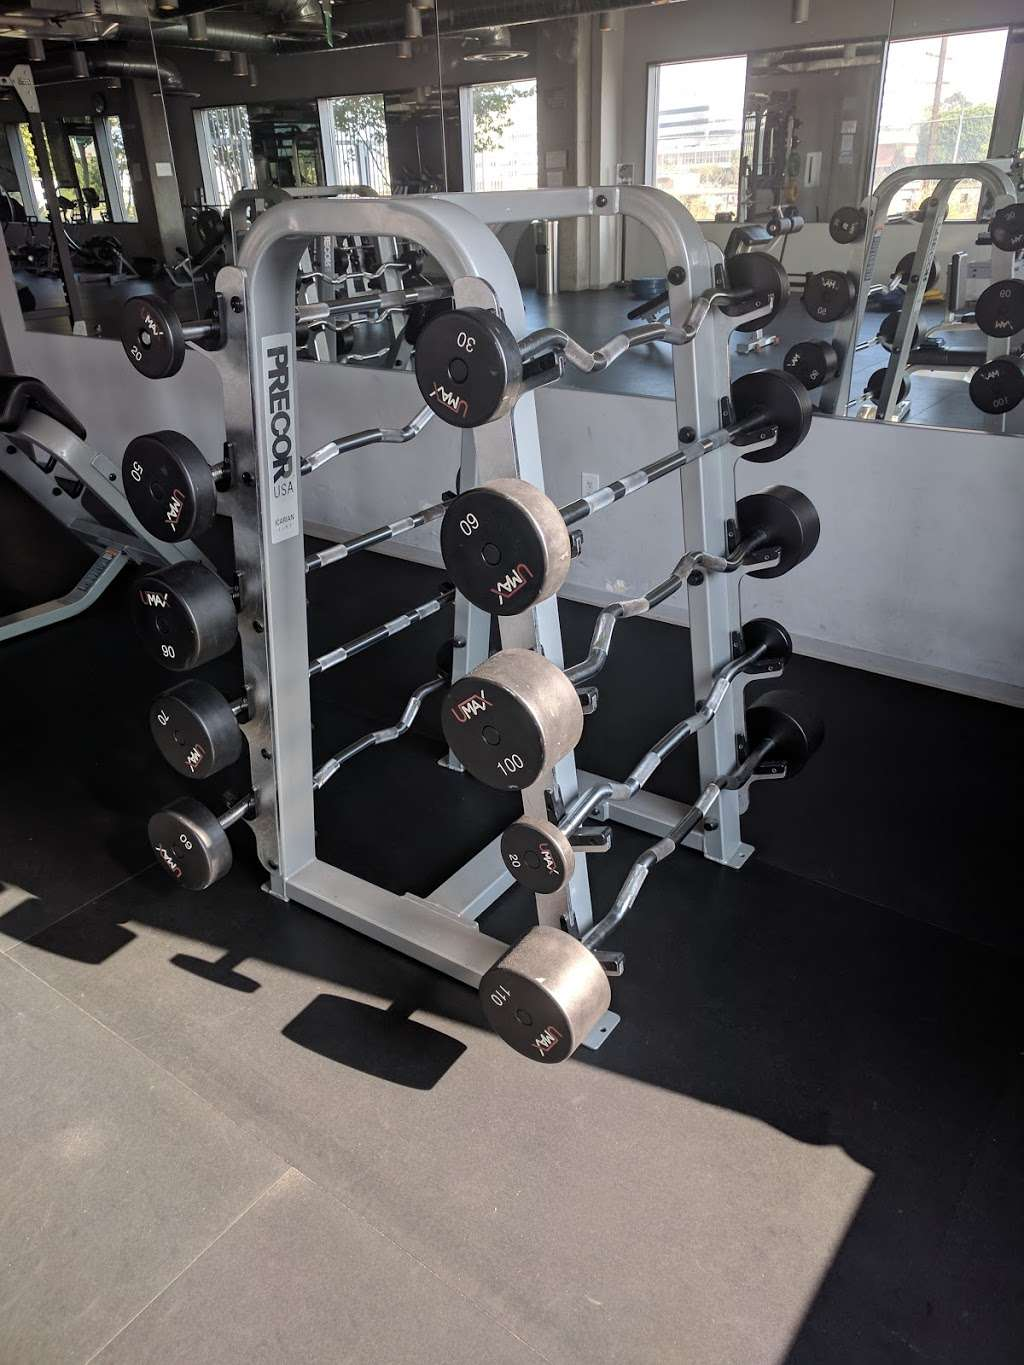 HSC Fitness Center - gym  | Photo 3 of 7 | Address: 2001 N Soto St, Los Angeles, CA 90032, USA | Phone: (323) 442-7210